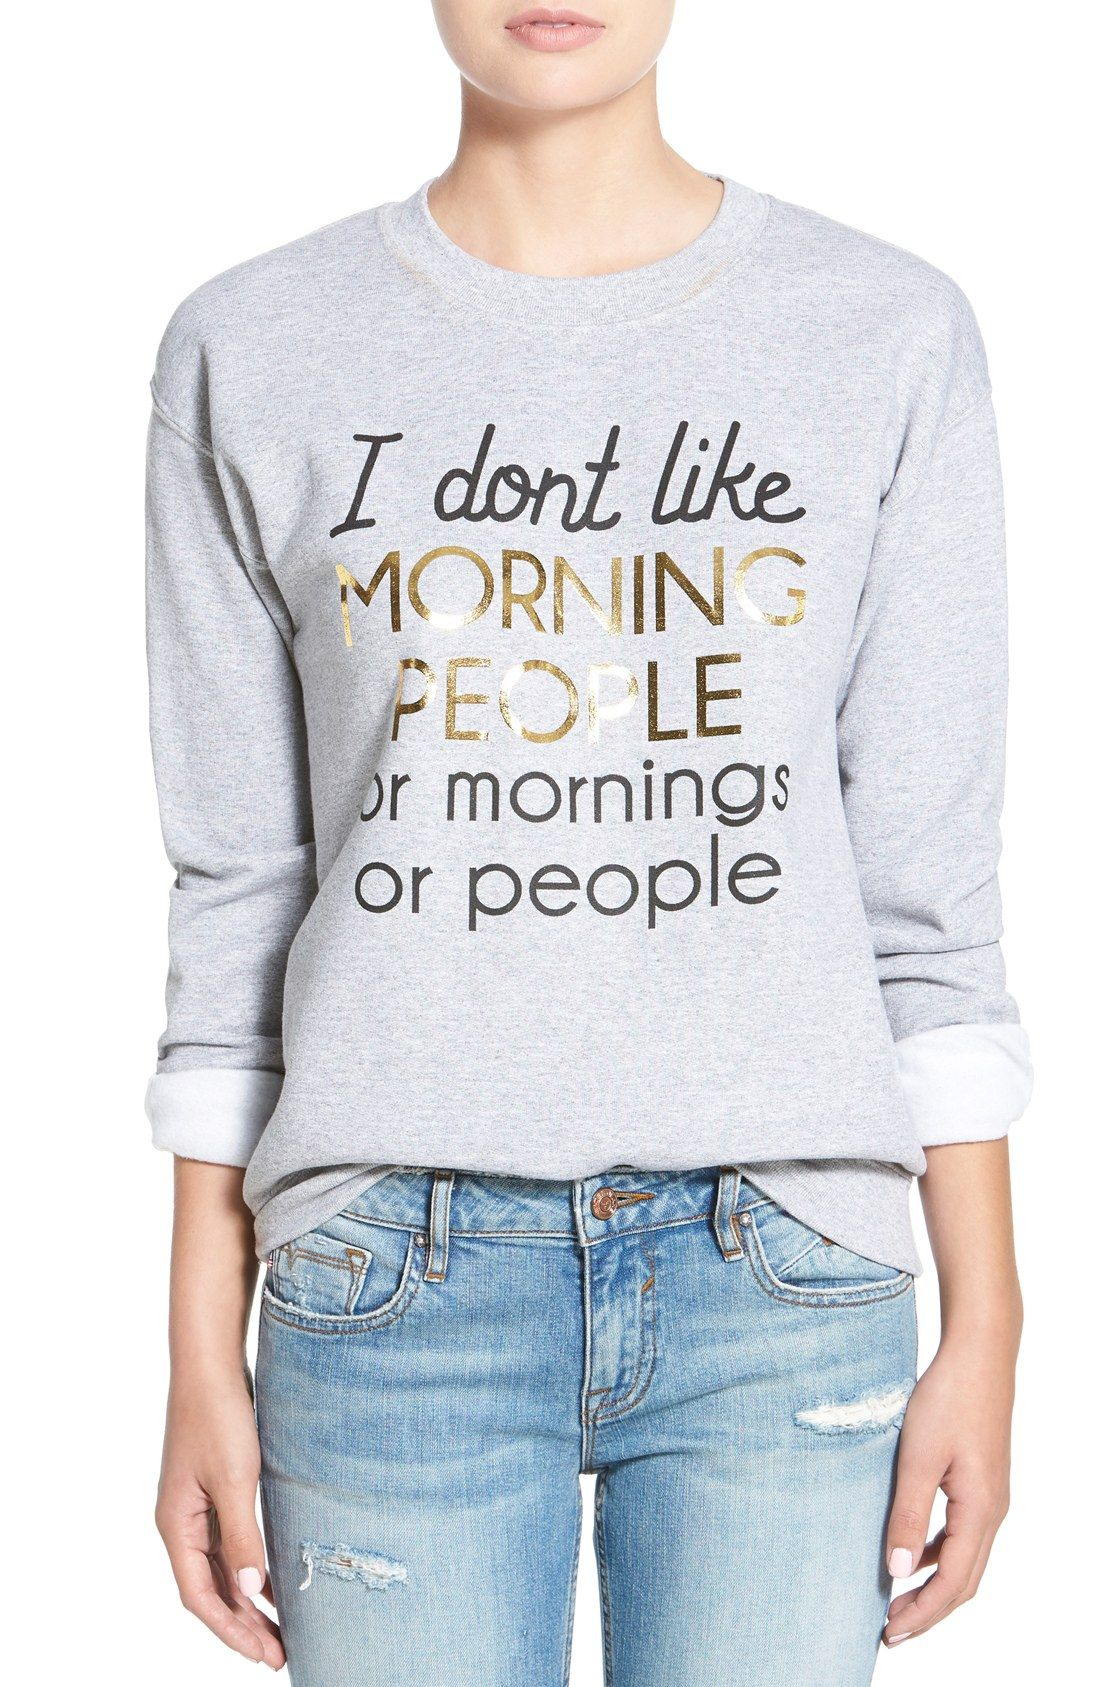 This sassy sweatshirt is perfect for those who don't like mornings, or people, and especially not morning people.